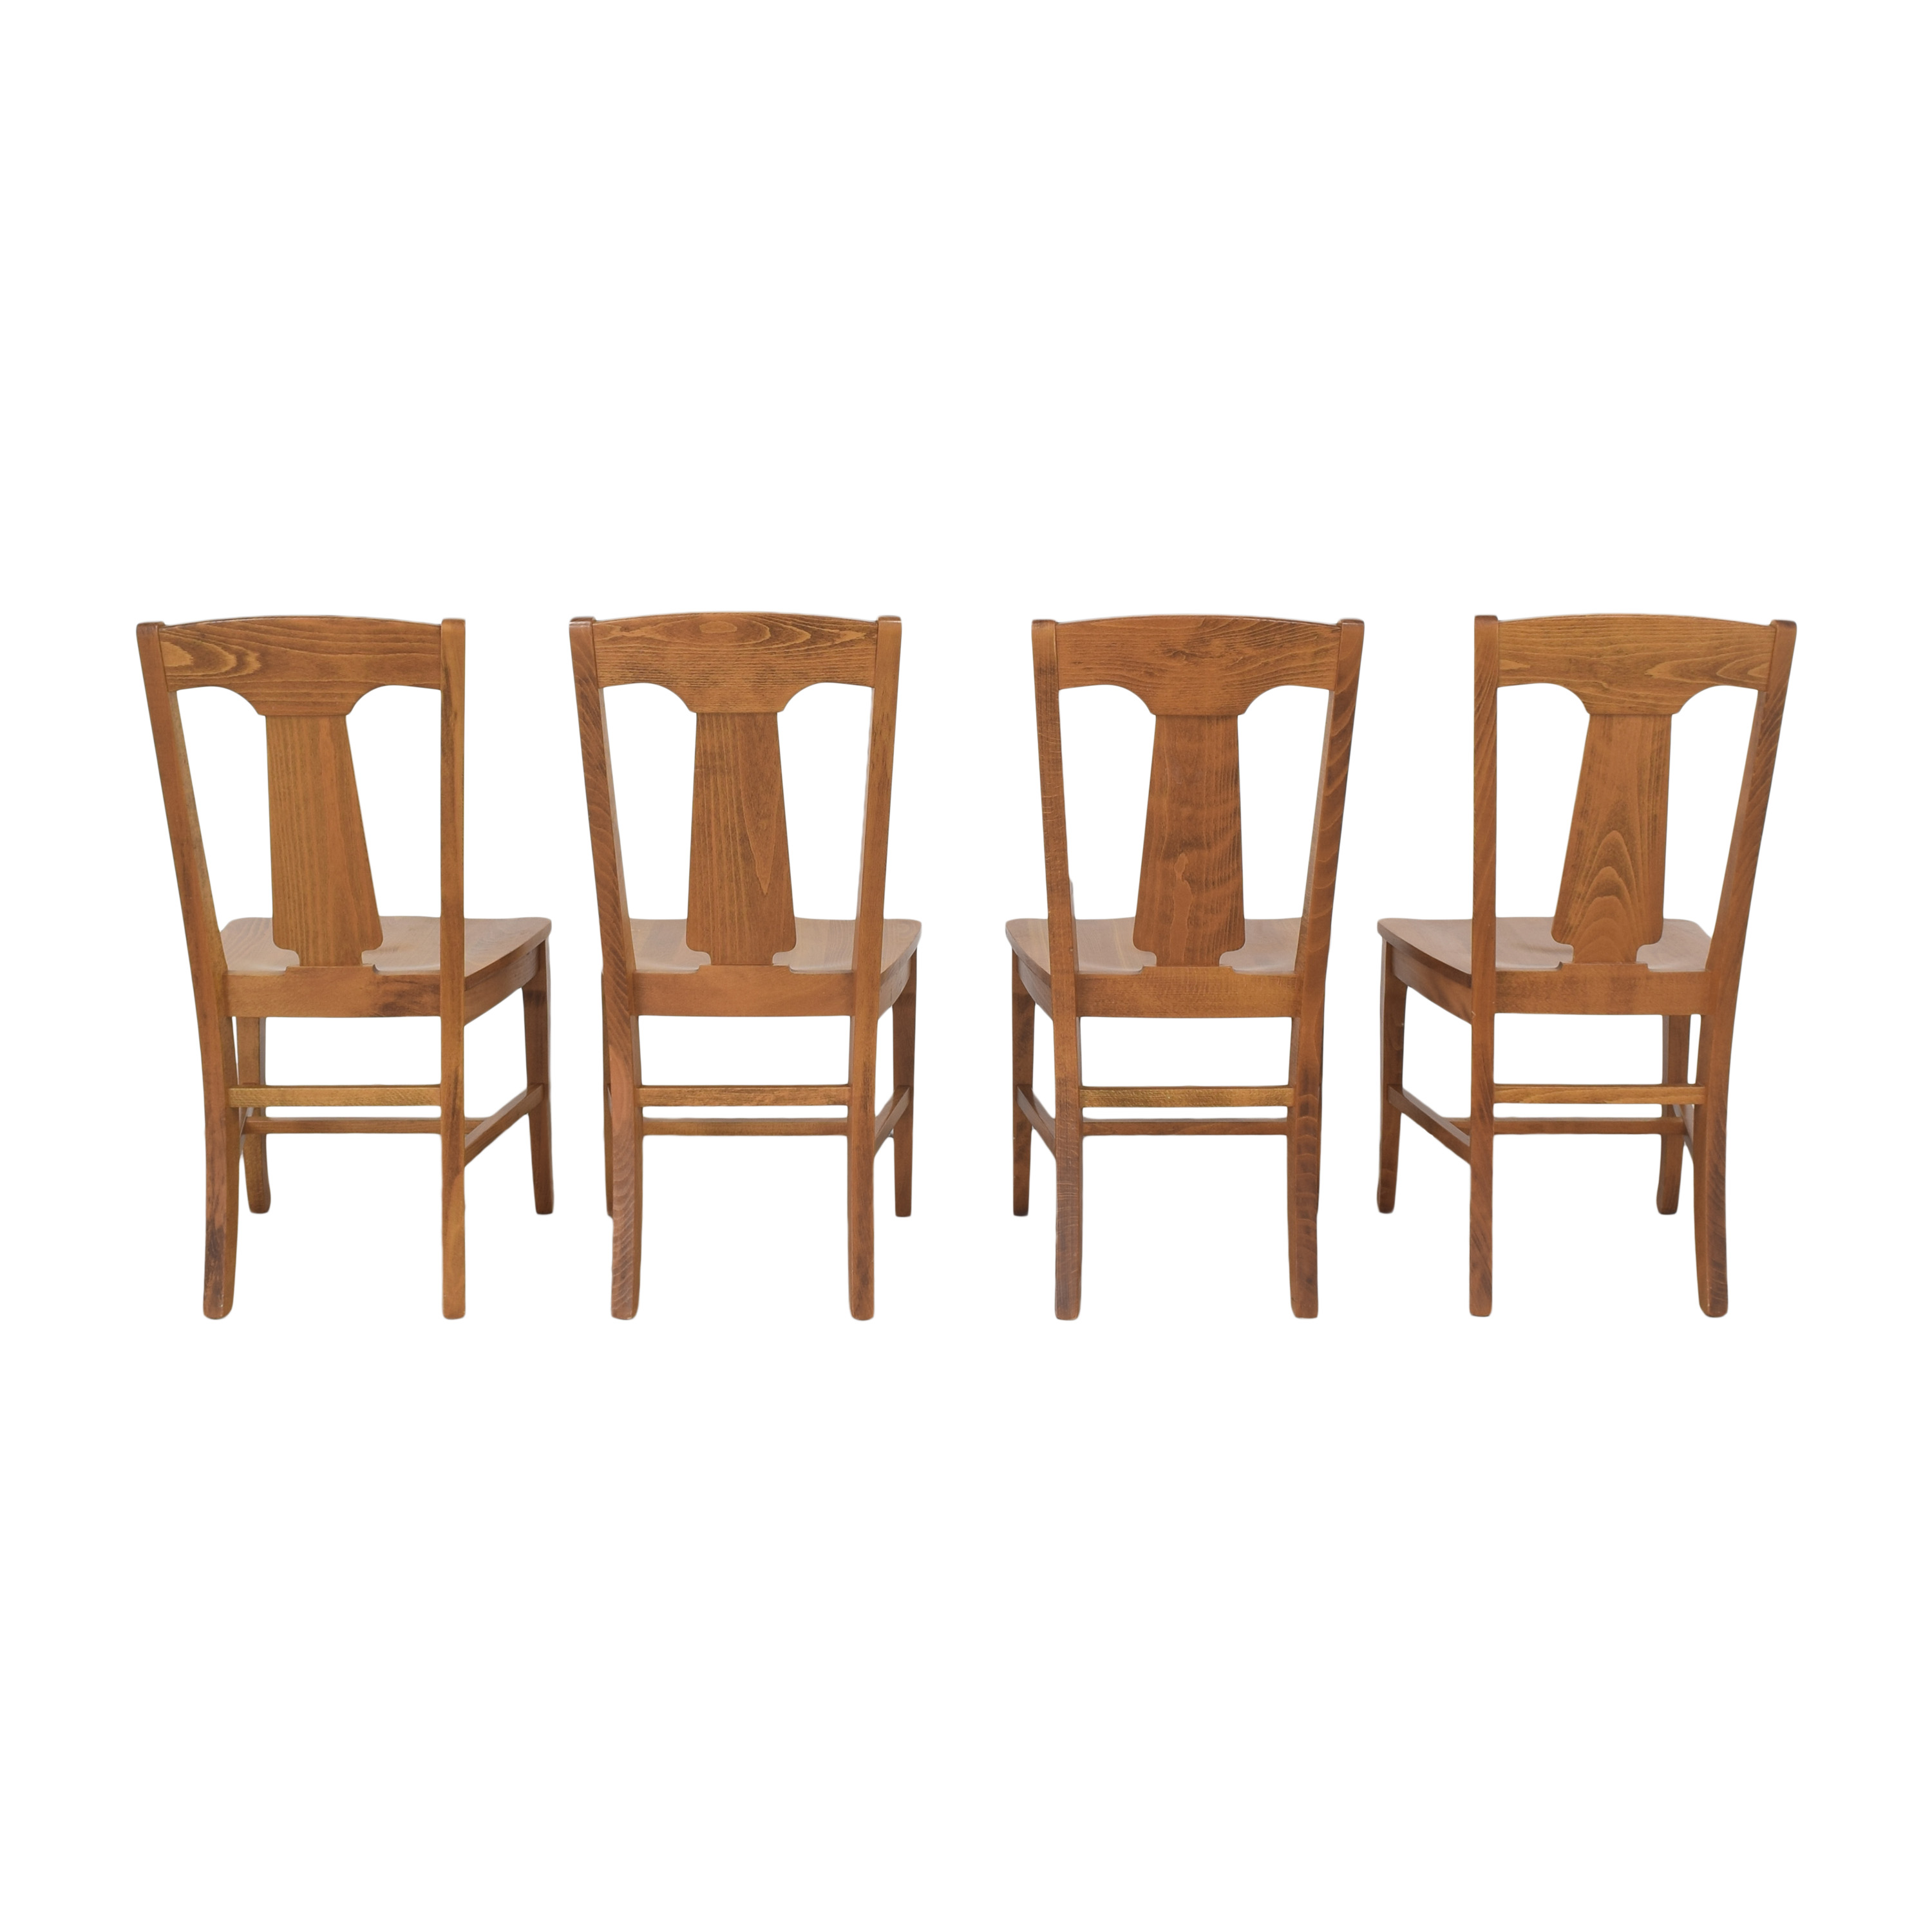 Pottery Barn Loren Dining Chairs / Dining Chairs